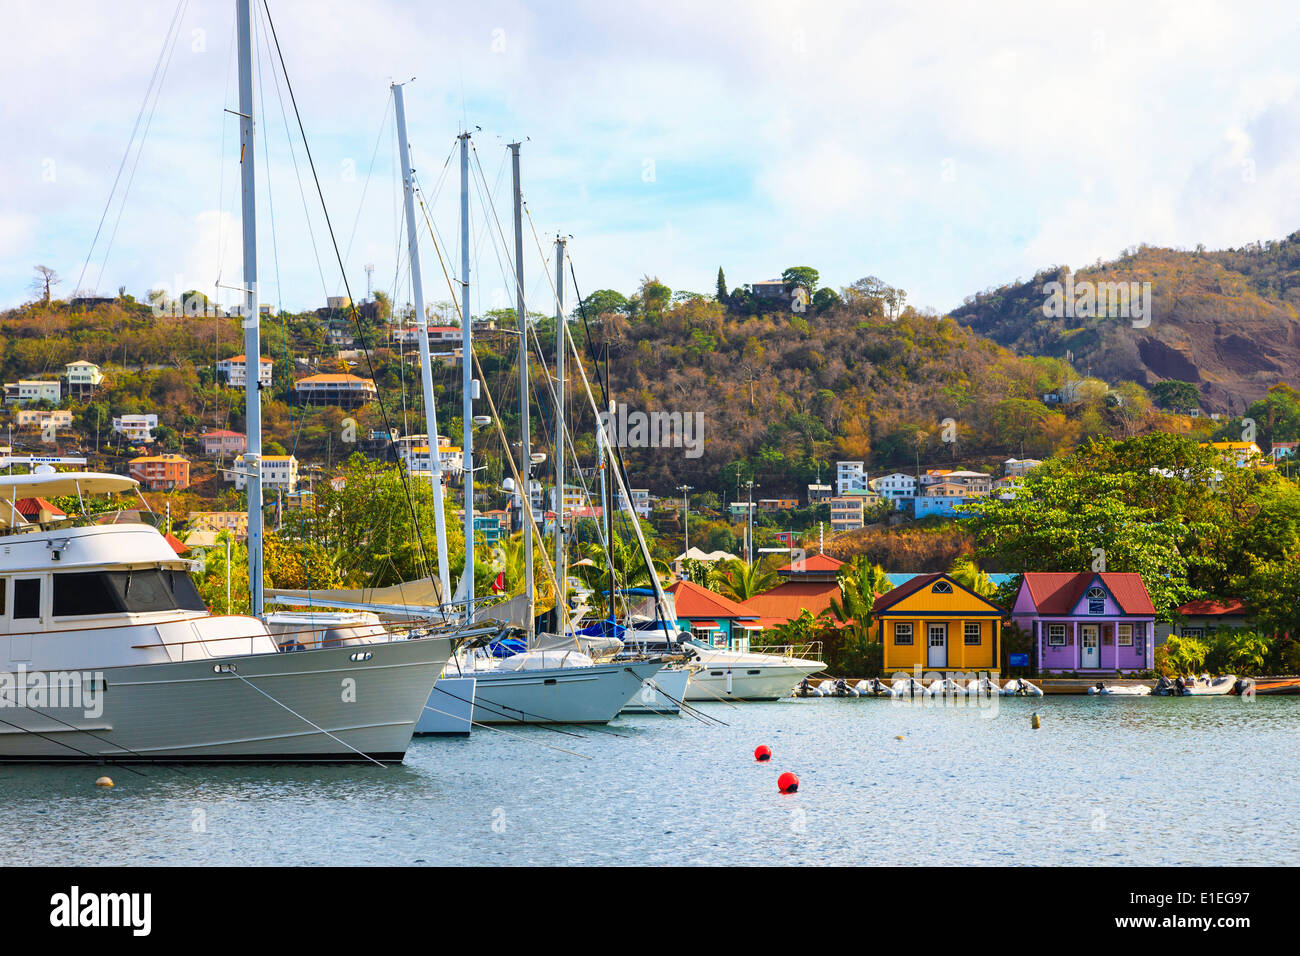 Yachts and houses in the Port Louis marina, in The Lagoon at St George's harbour, St George, Grenada, West Indies Stock Photo